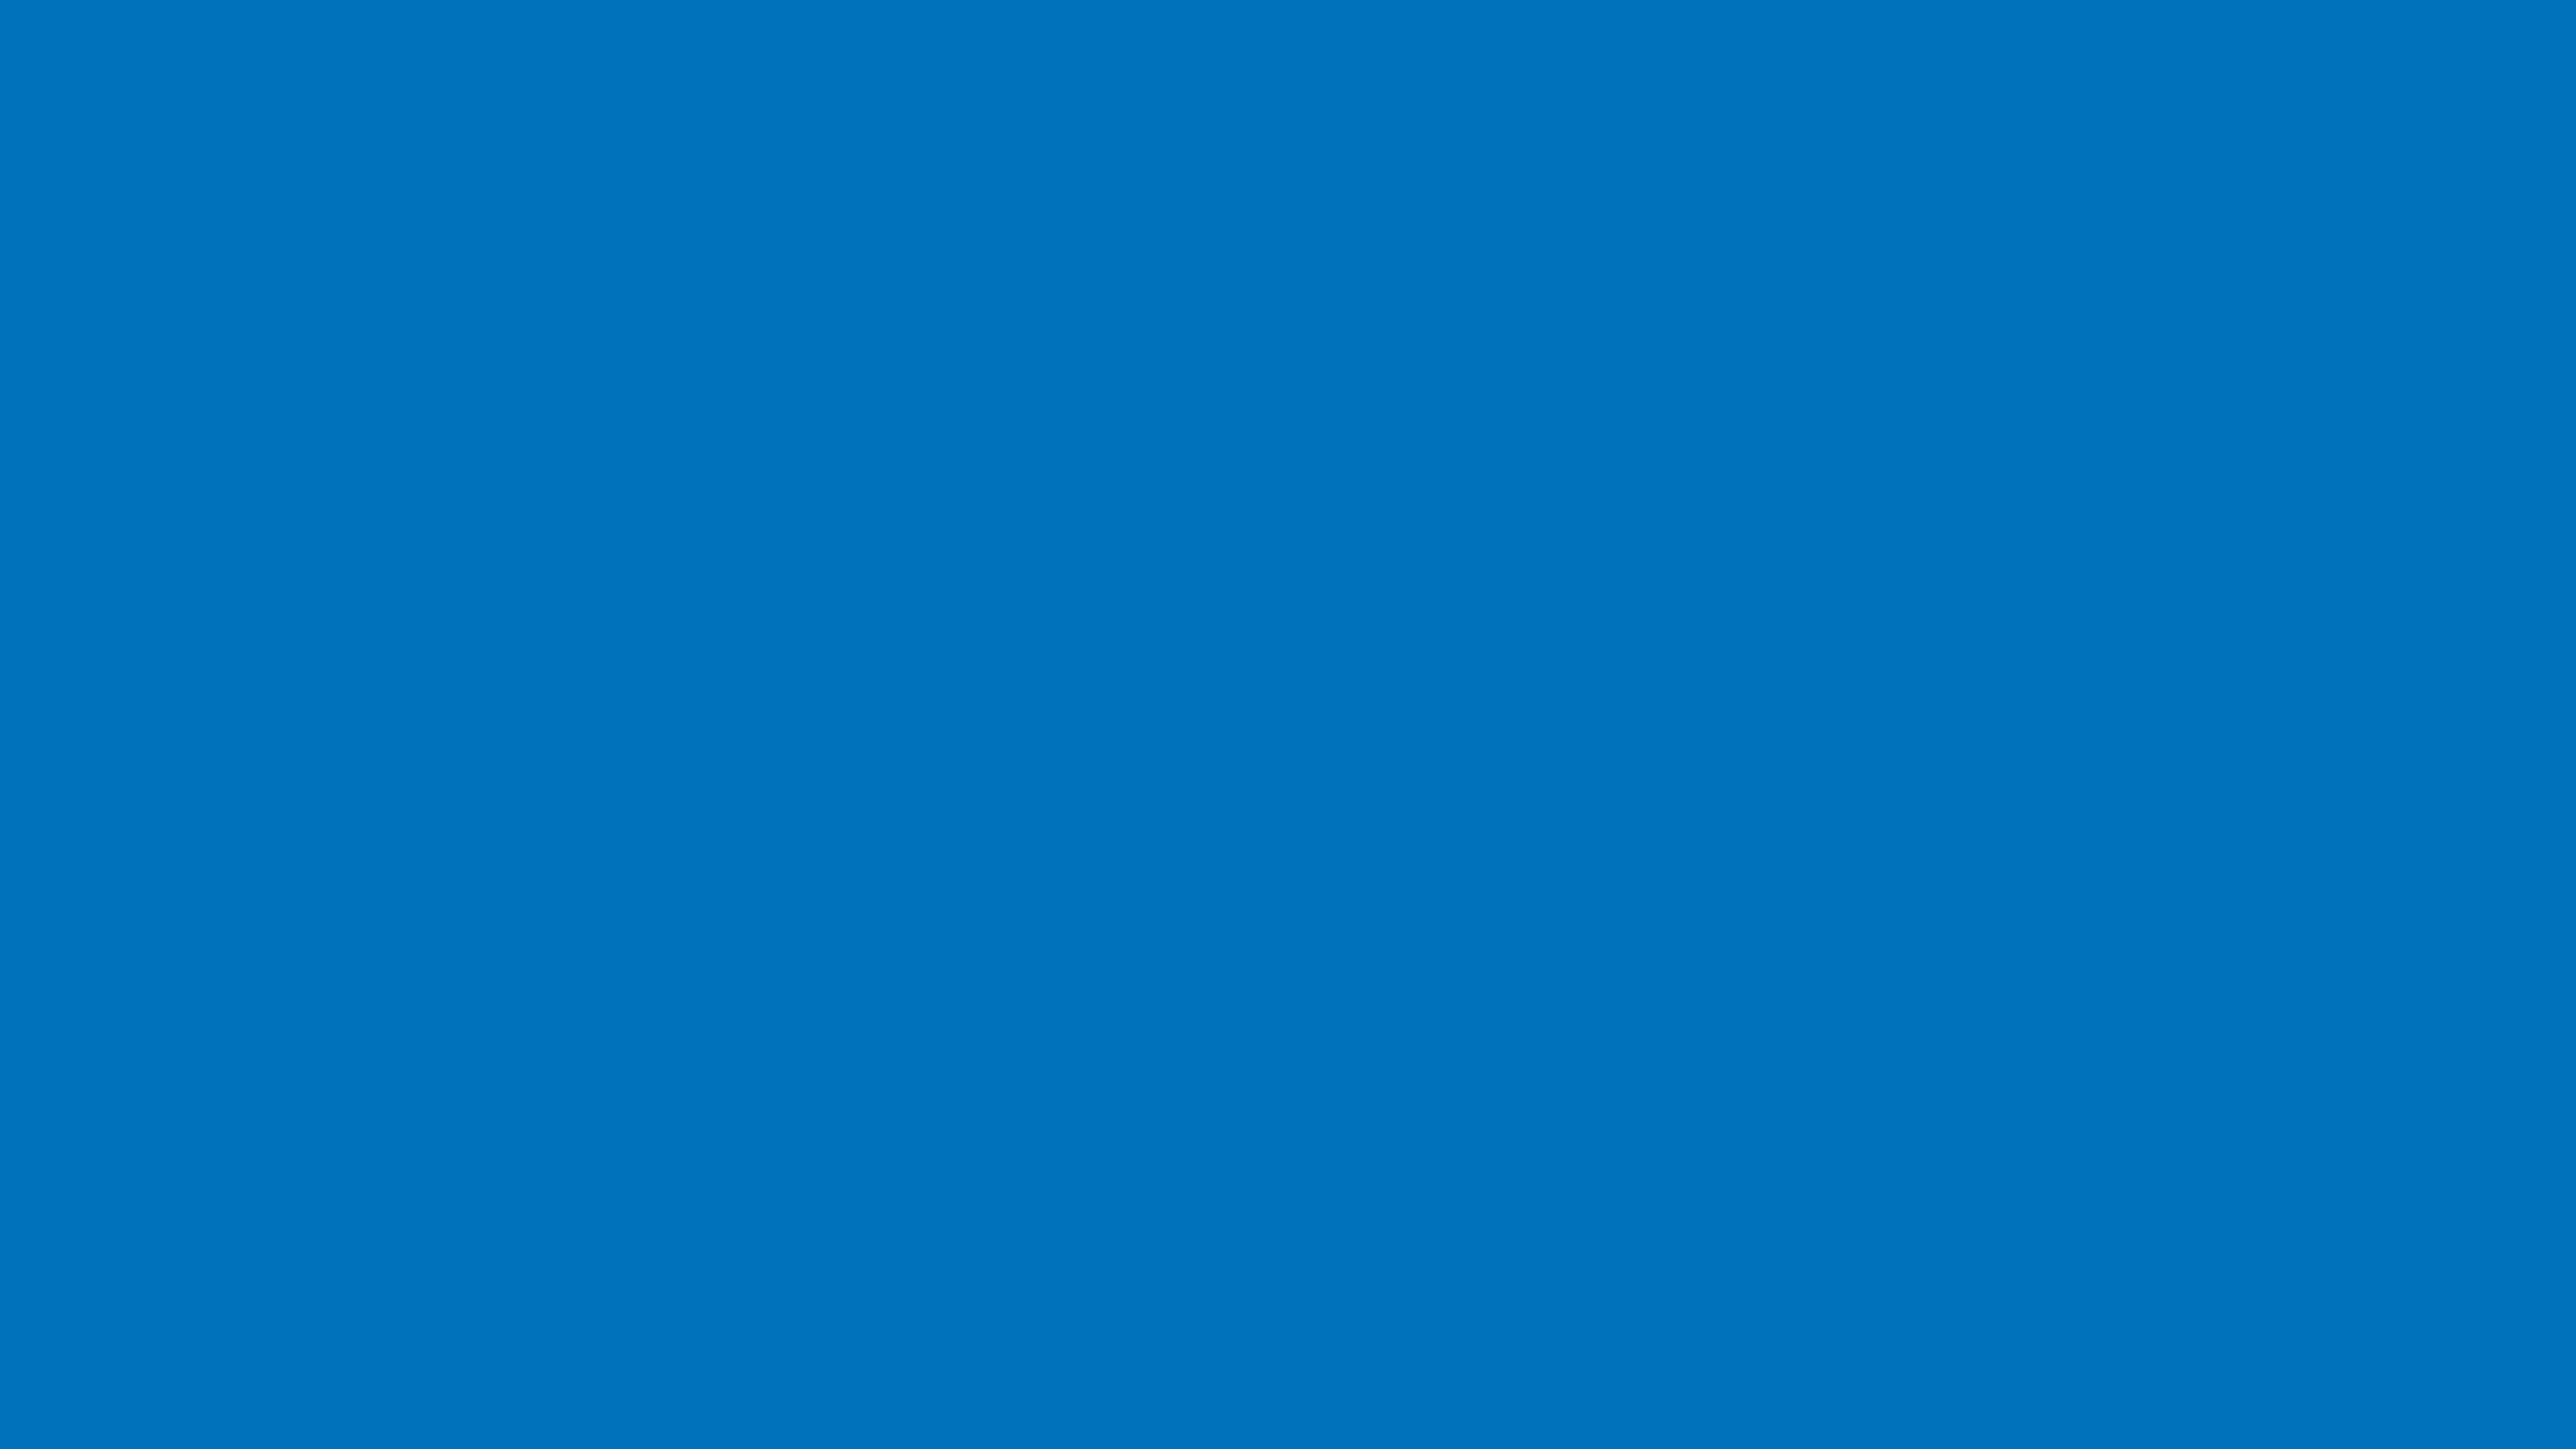 5120x2880 French Blue Solid Color Background